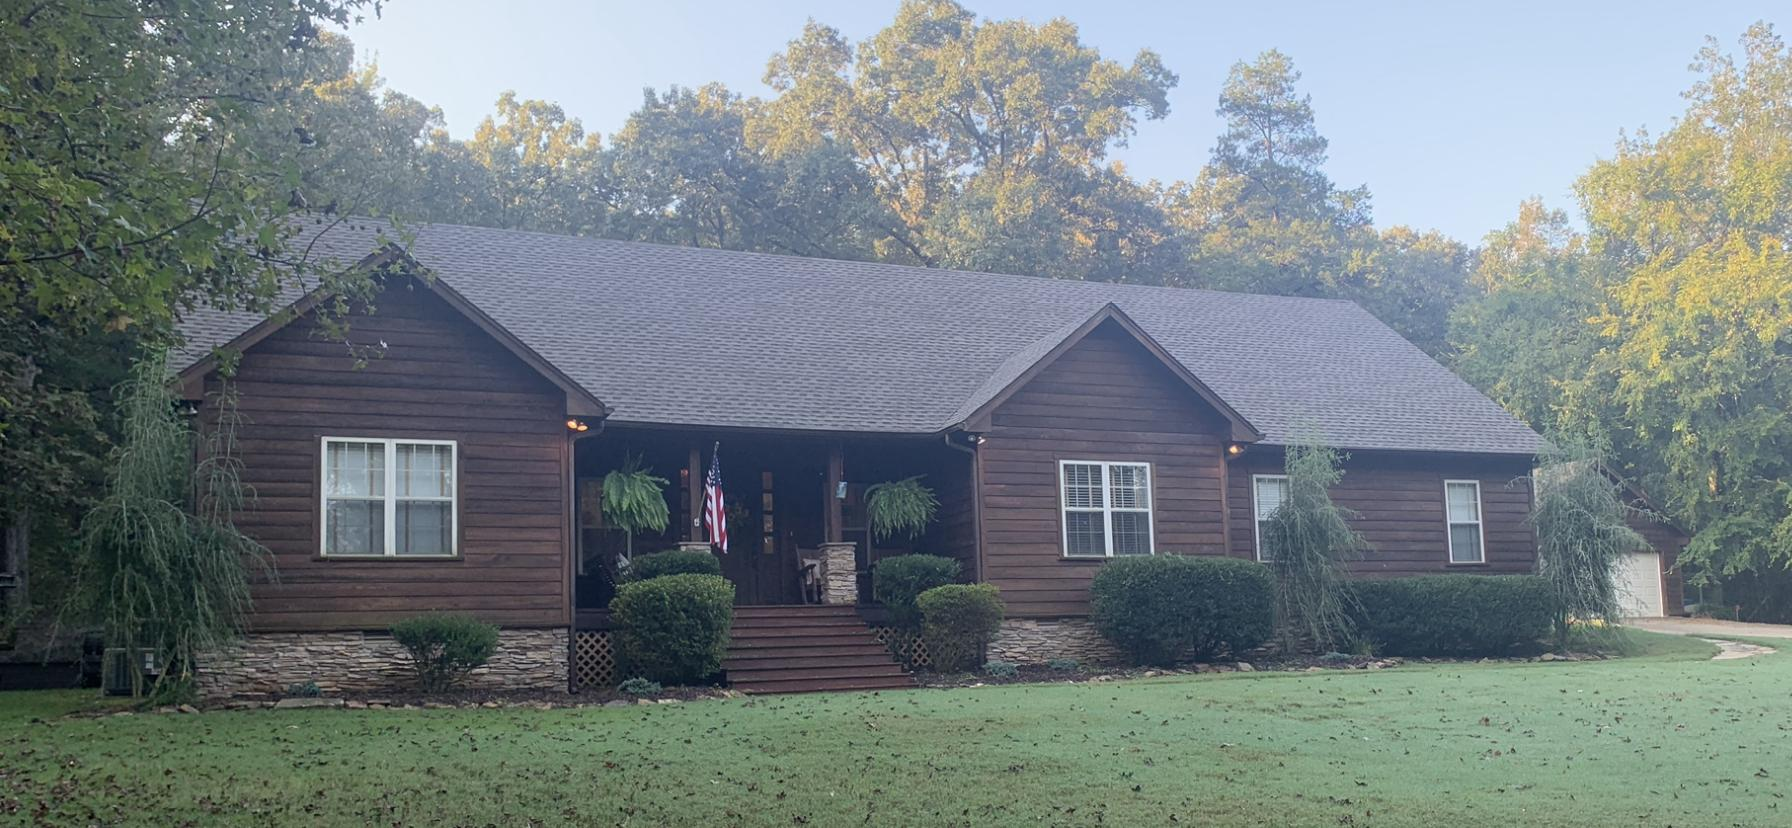 Large photo 1 of home for sale at 4994 AR-124 , Russellville, AR